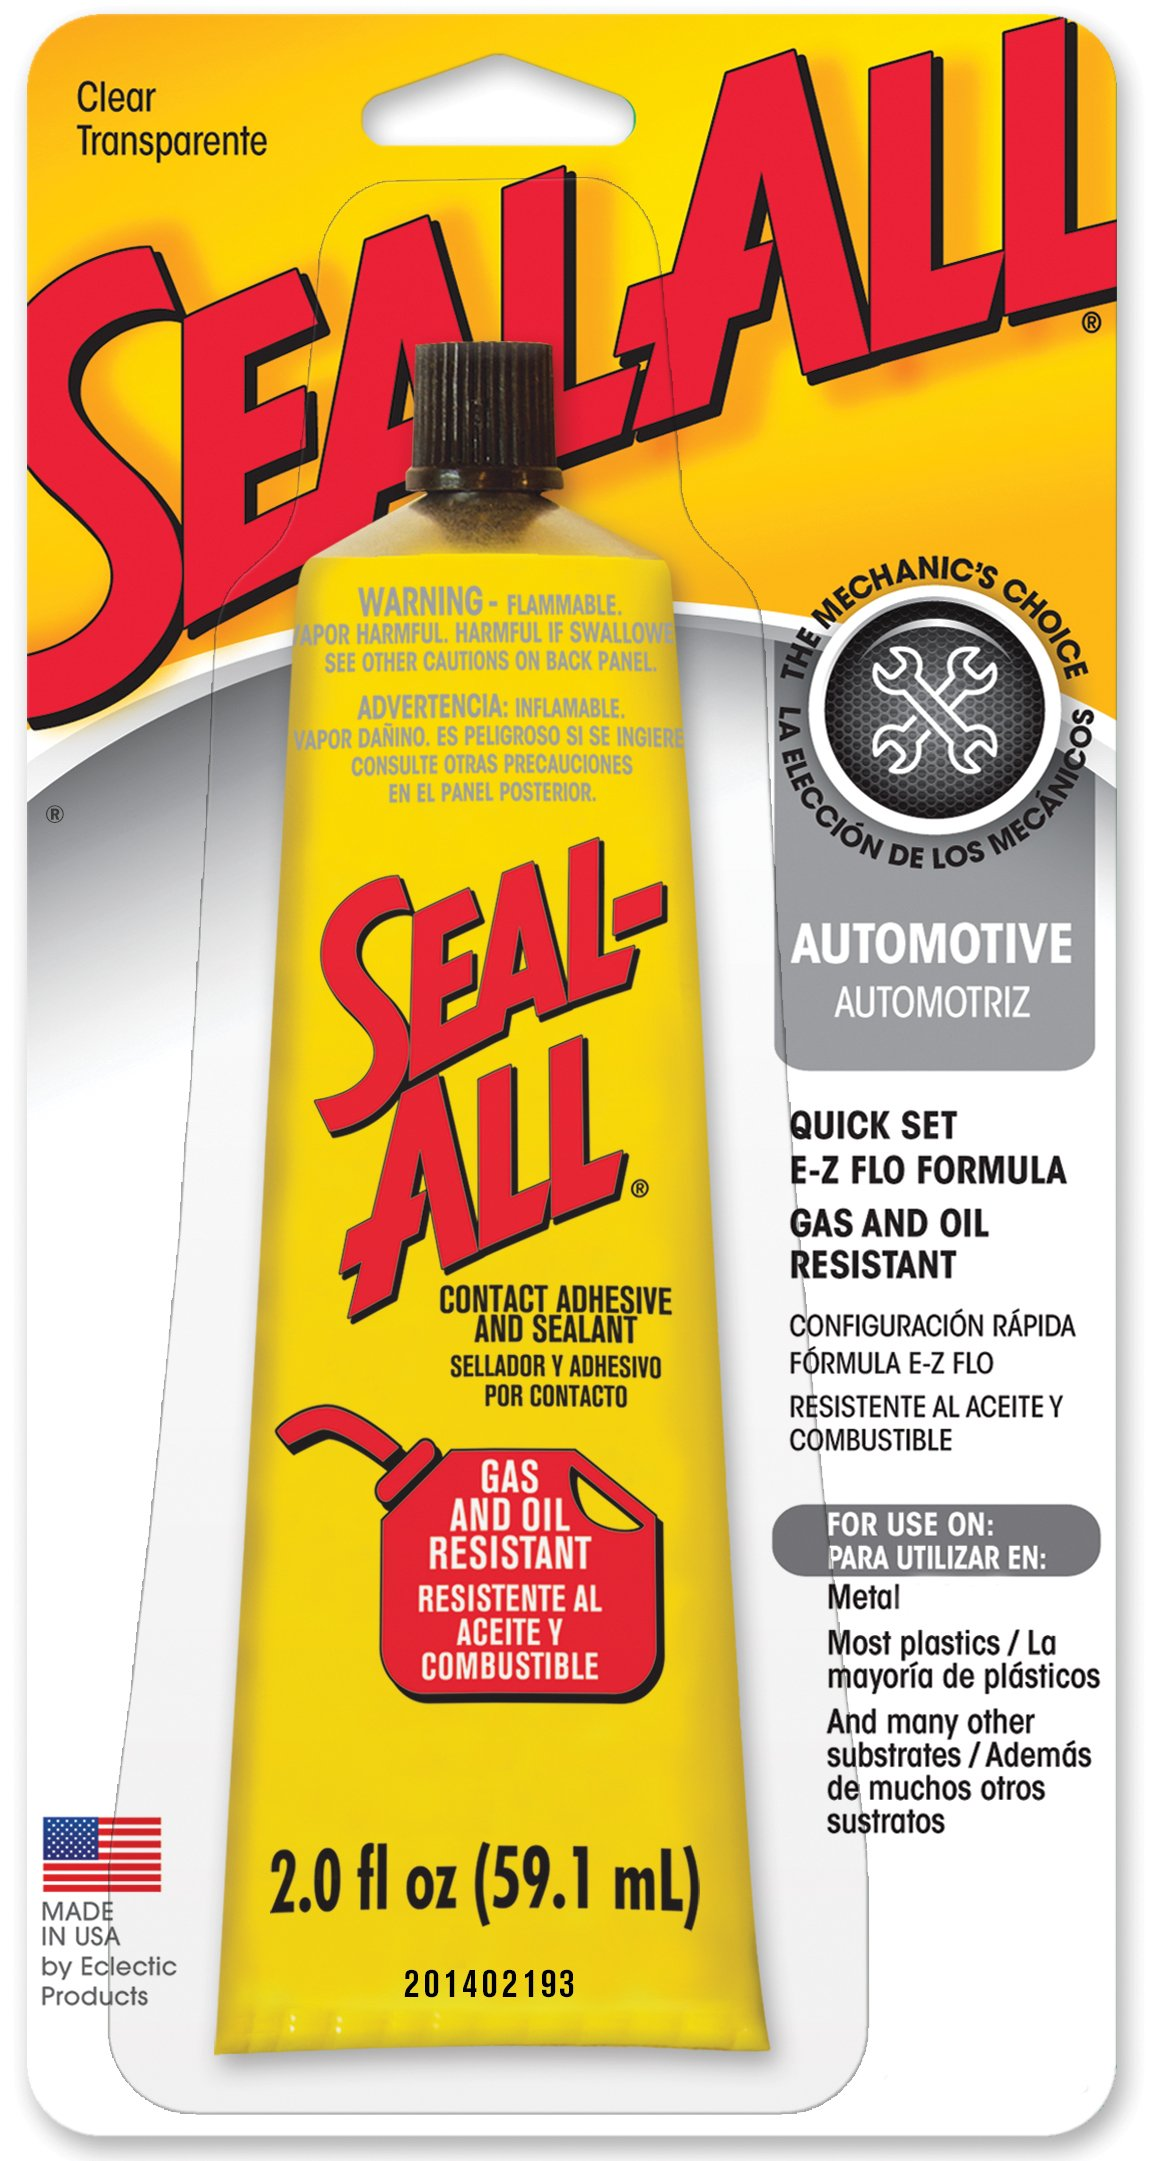 Seal-All 380112 Contact Adhesive and Sealant - 2 fl oz product image